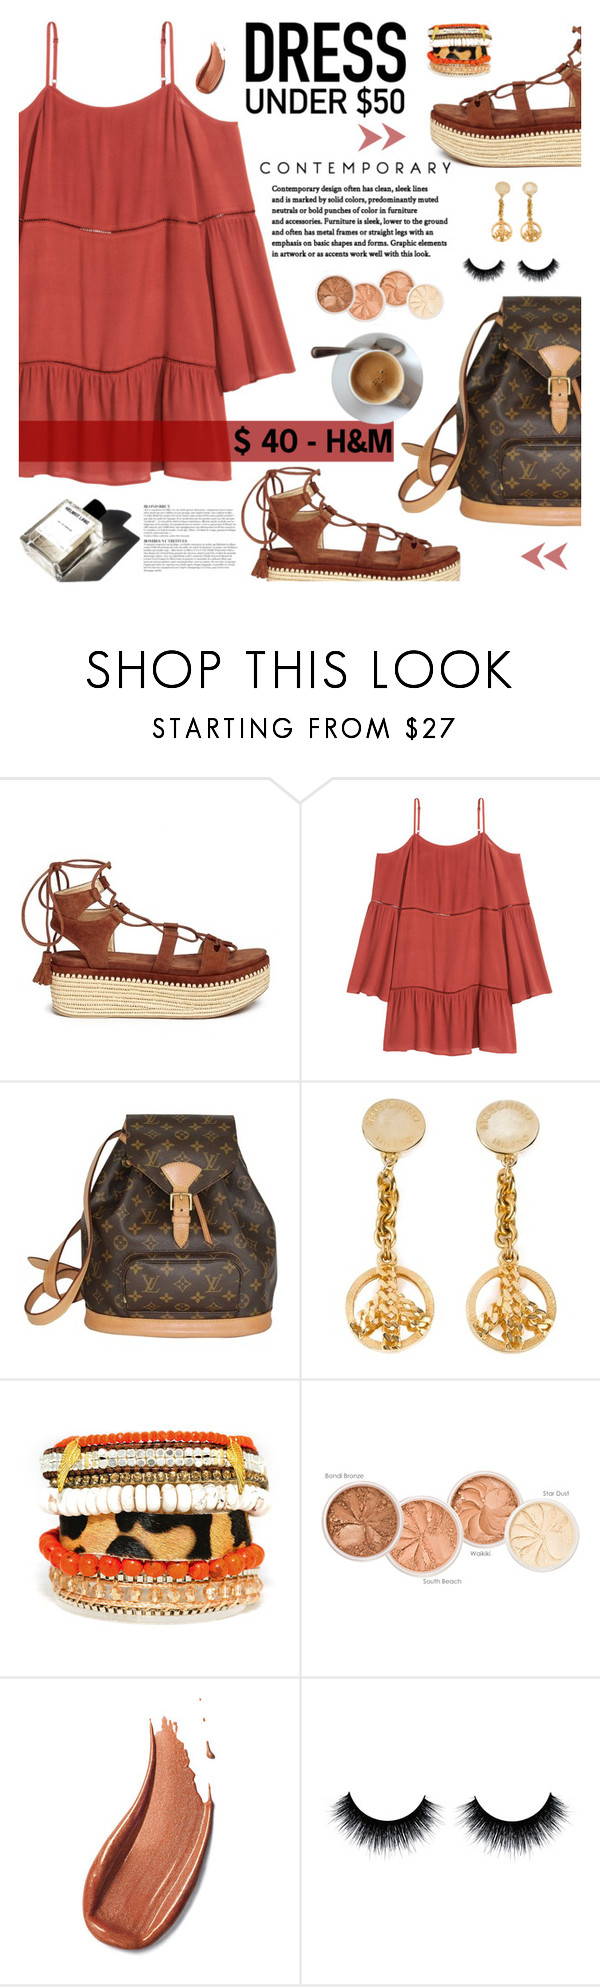 """""""Top Fashion Set for May 21st, 2016"""" by giogiota ❤ liked on Polyvore featuring Anja, Stuart Weitzman, Louis Vuitton, Moschino, Garance Doré, polyvoreeditorial, polyvorecontest and Dressunder50"""